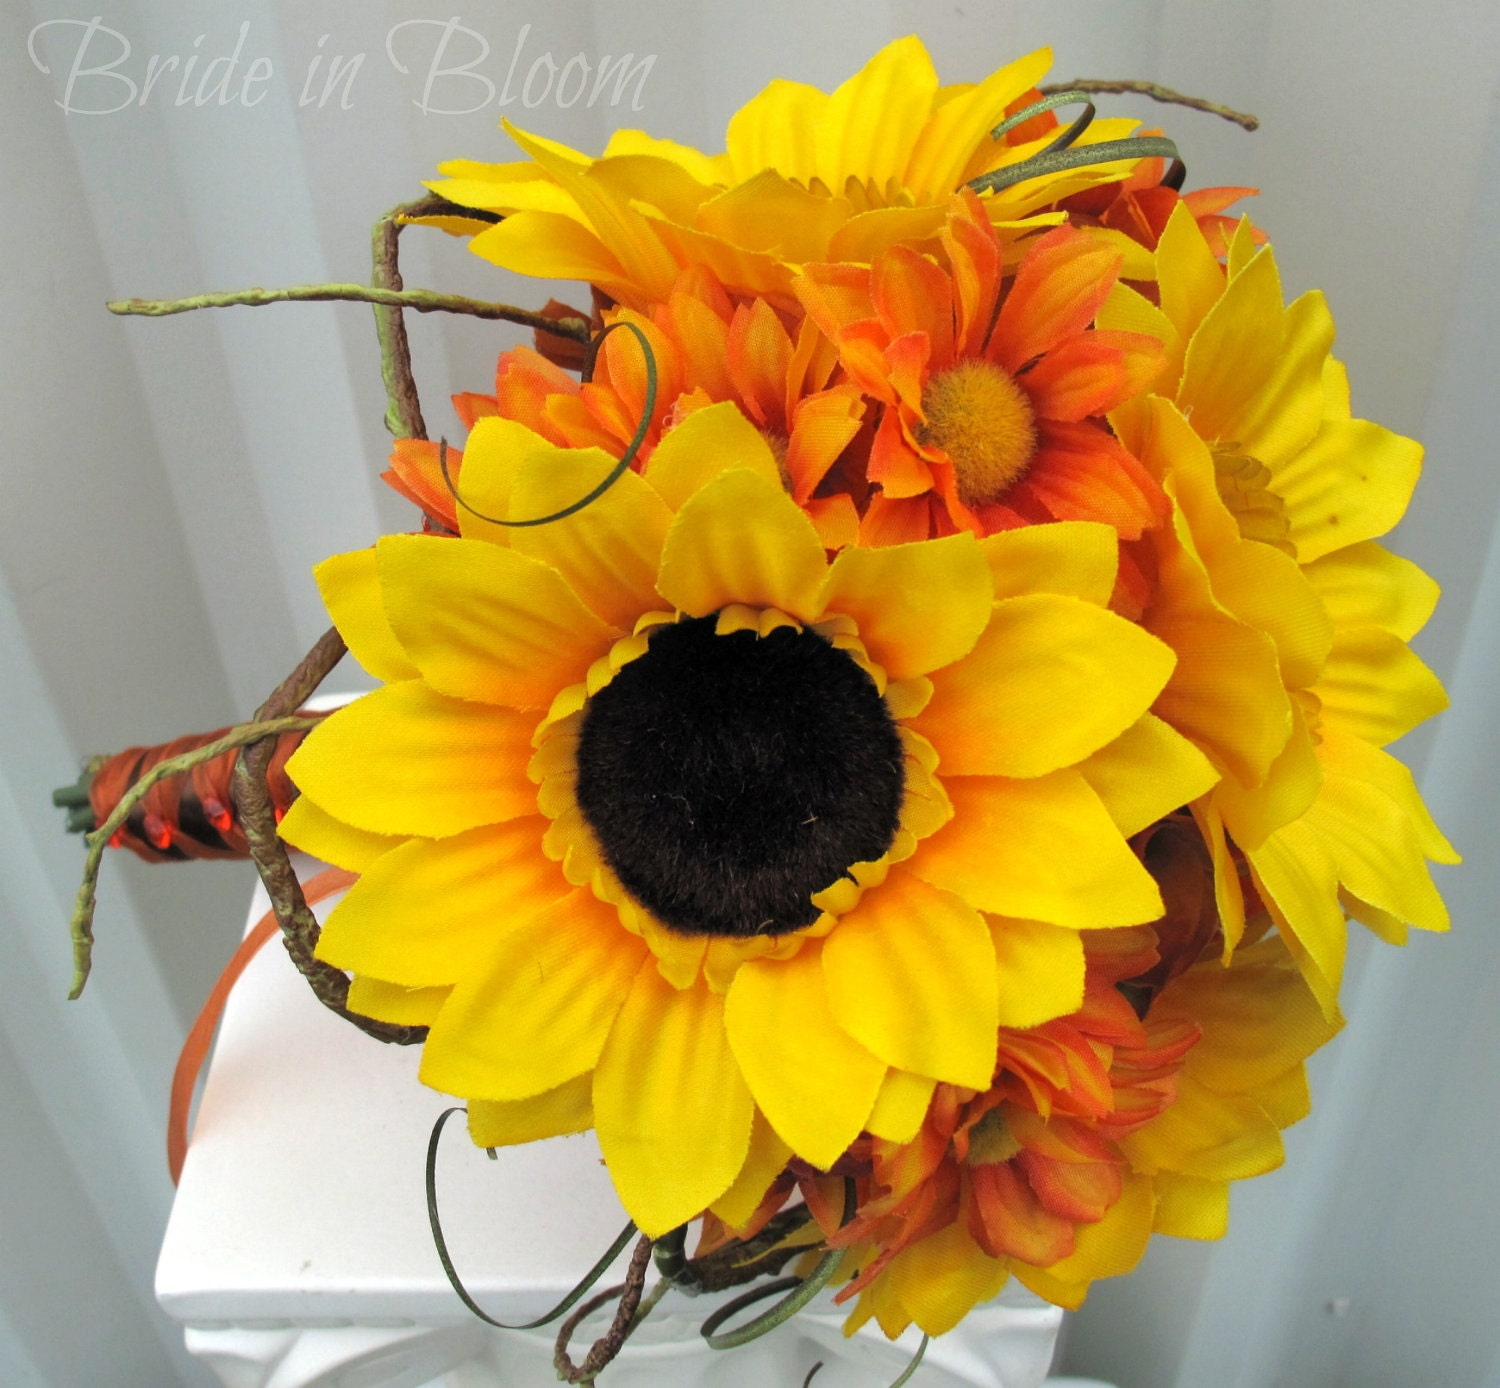 Bridesmaid Bouquets Sunflowers : Sunflower wedding bouquet tangerine orange by